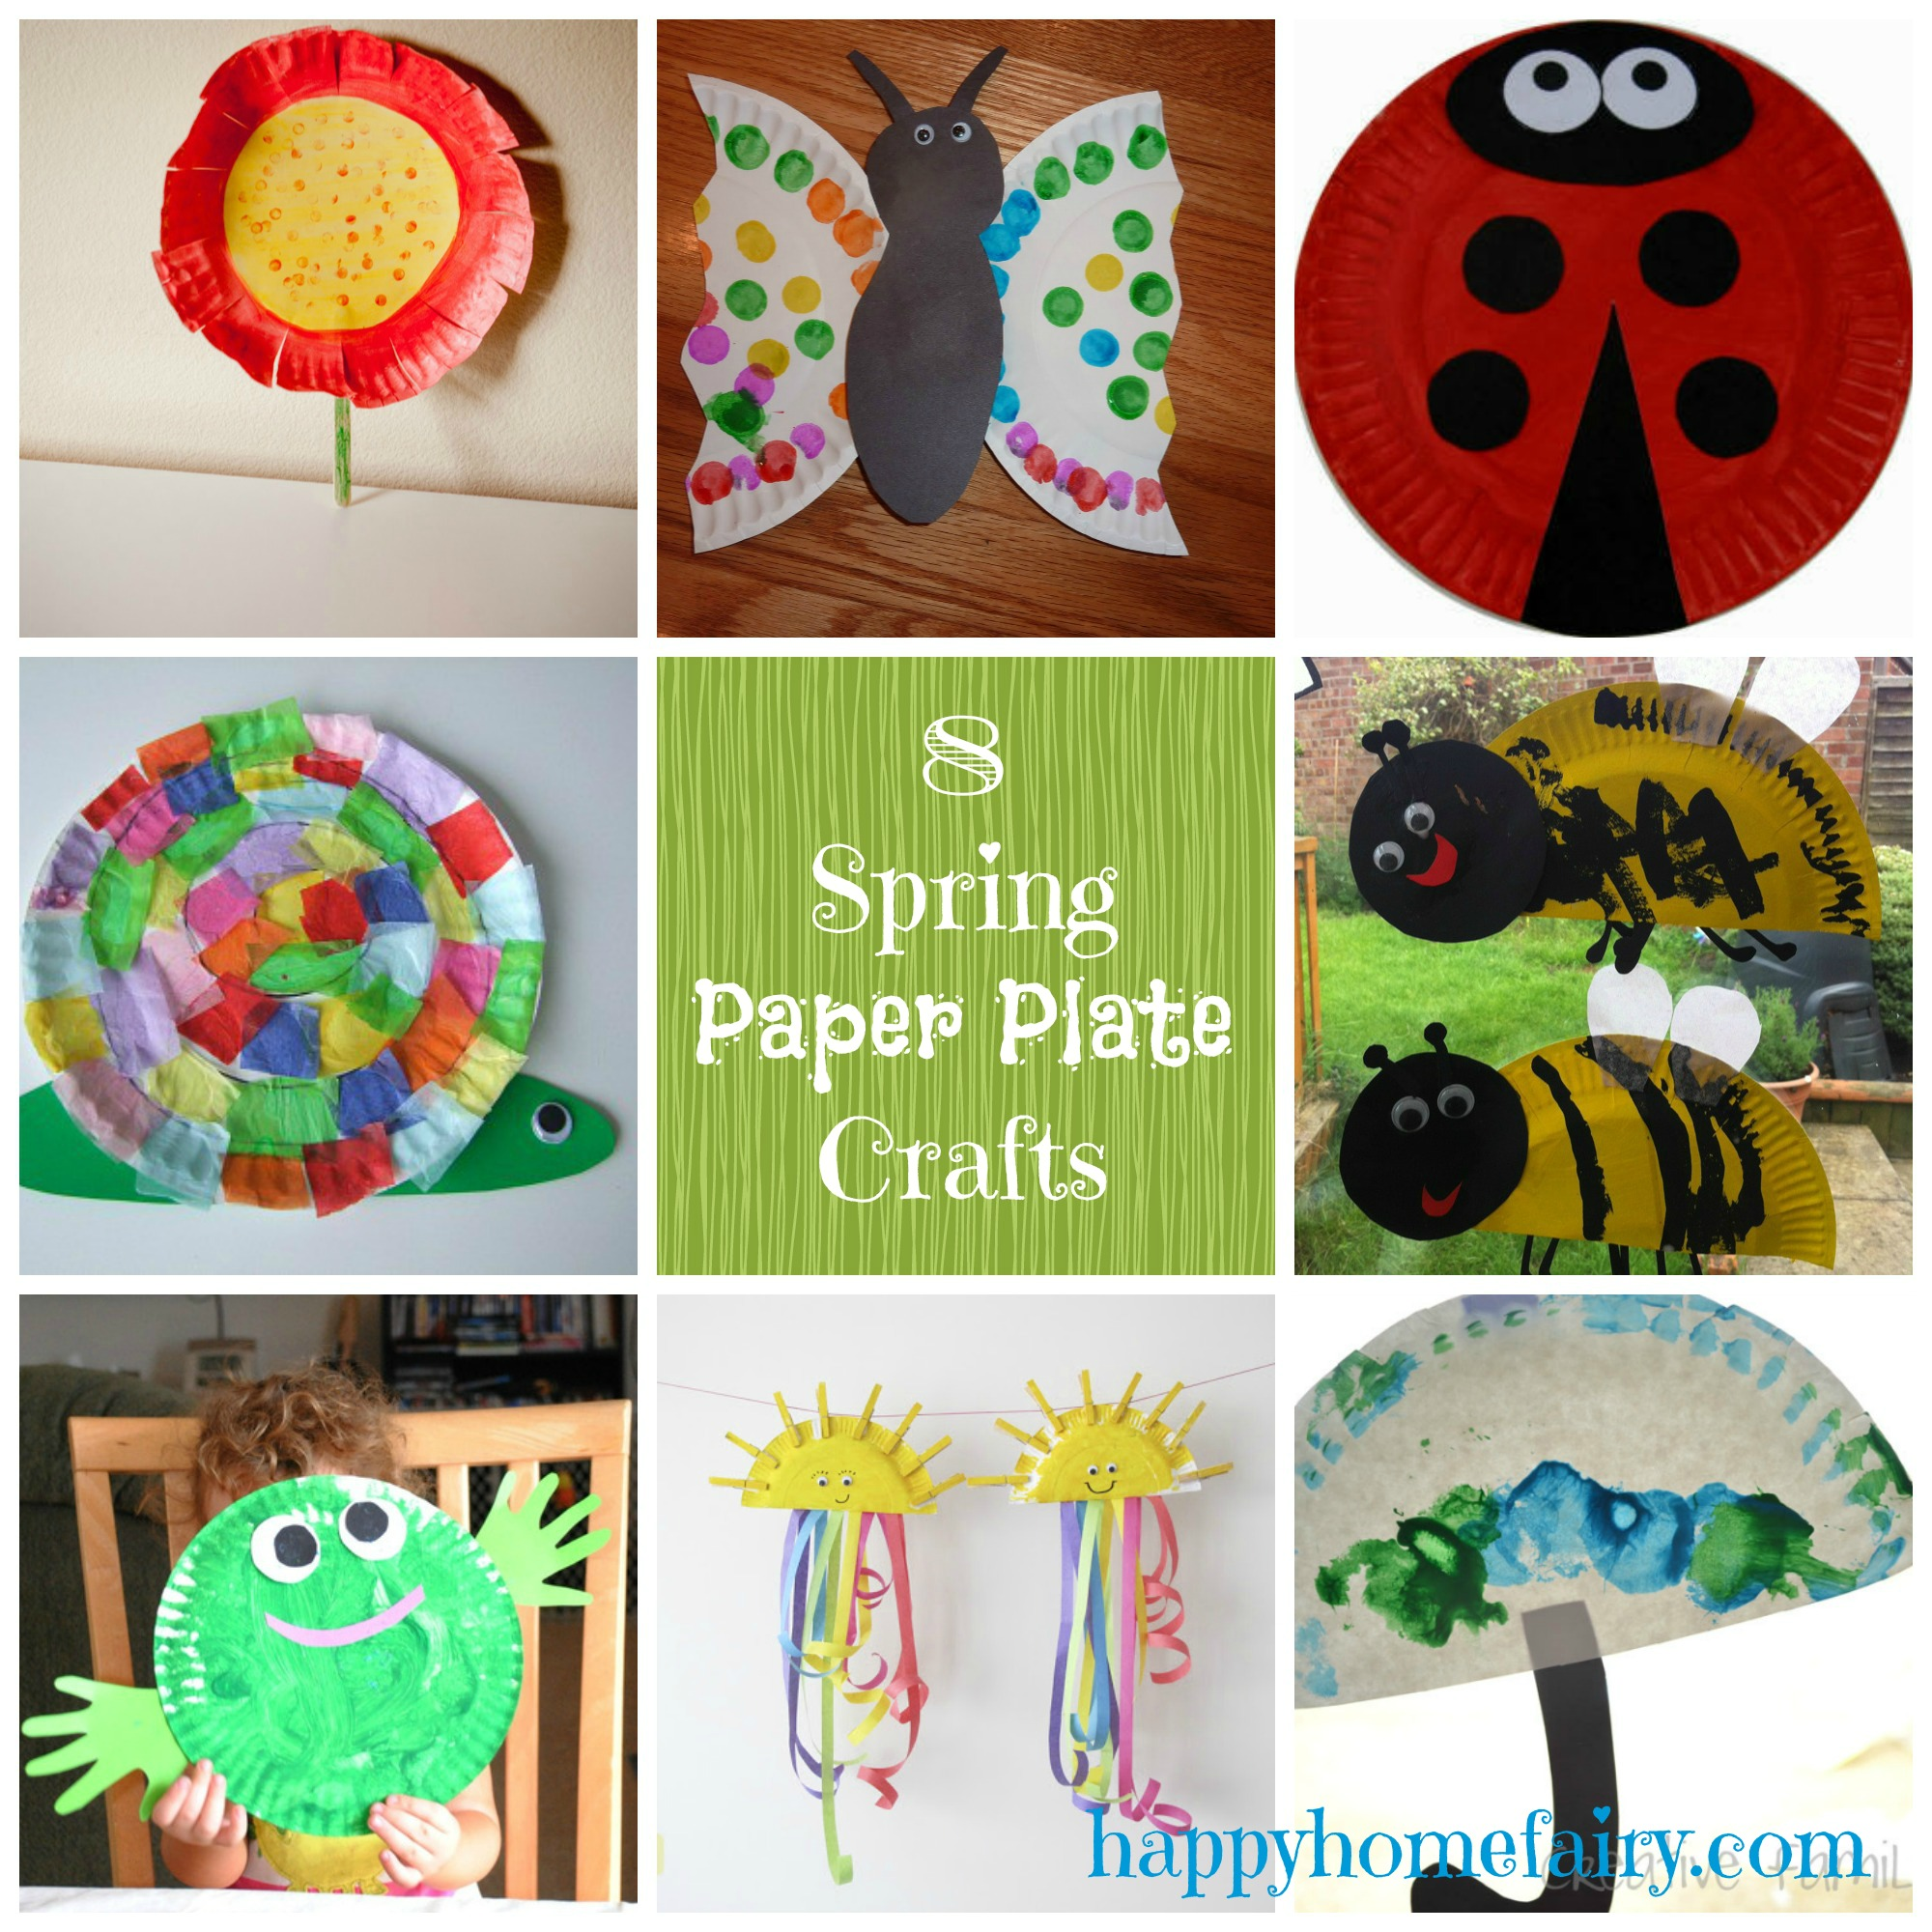 Paper Plate Crafts For Spring